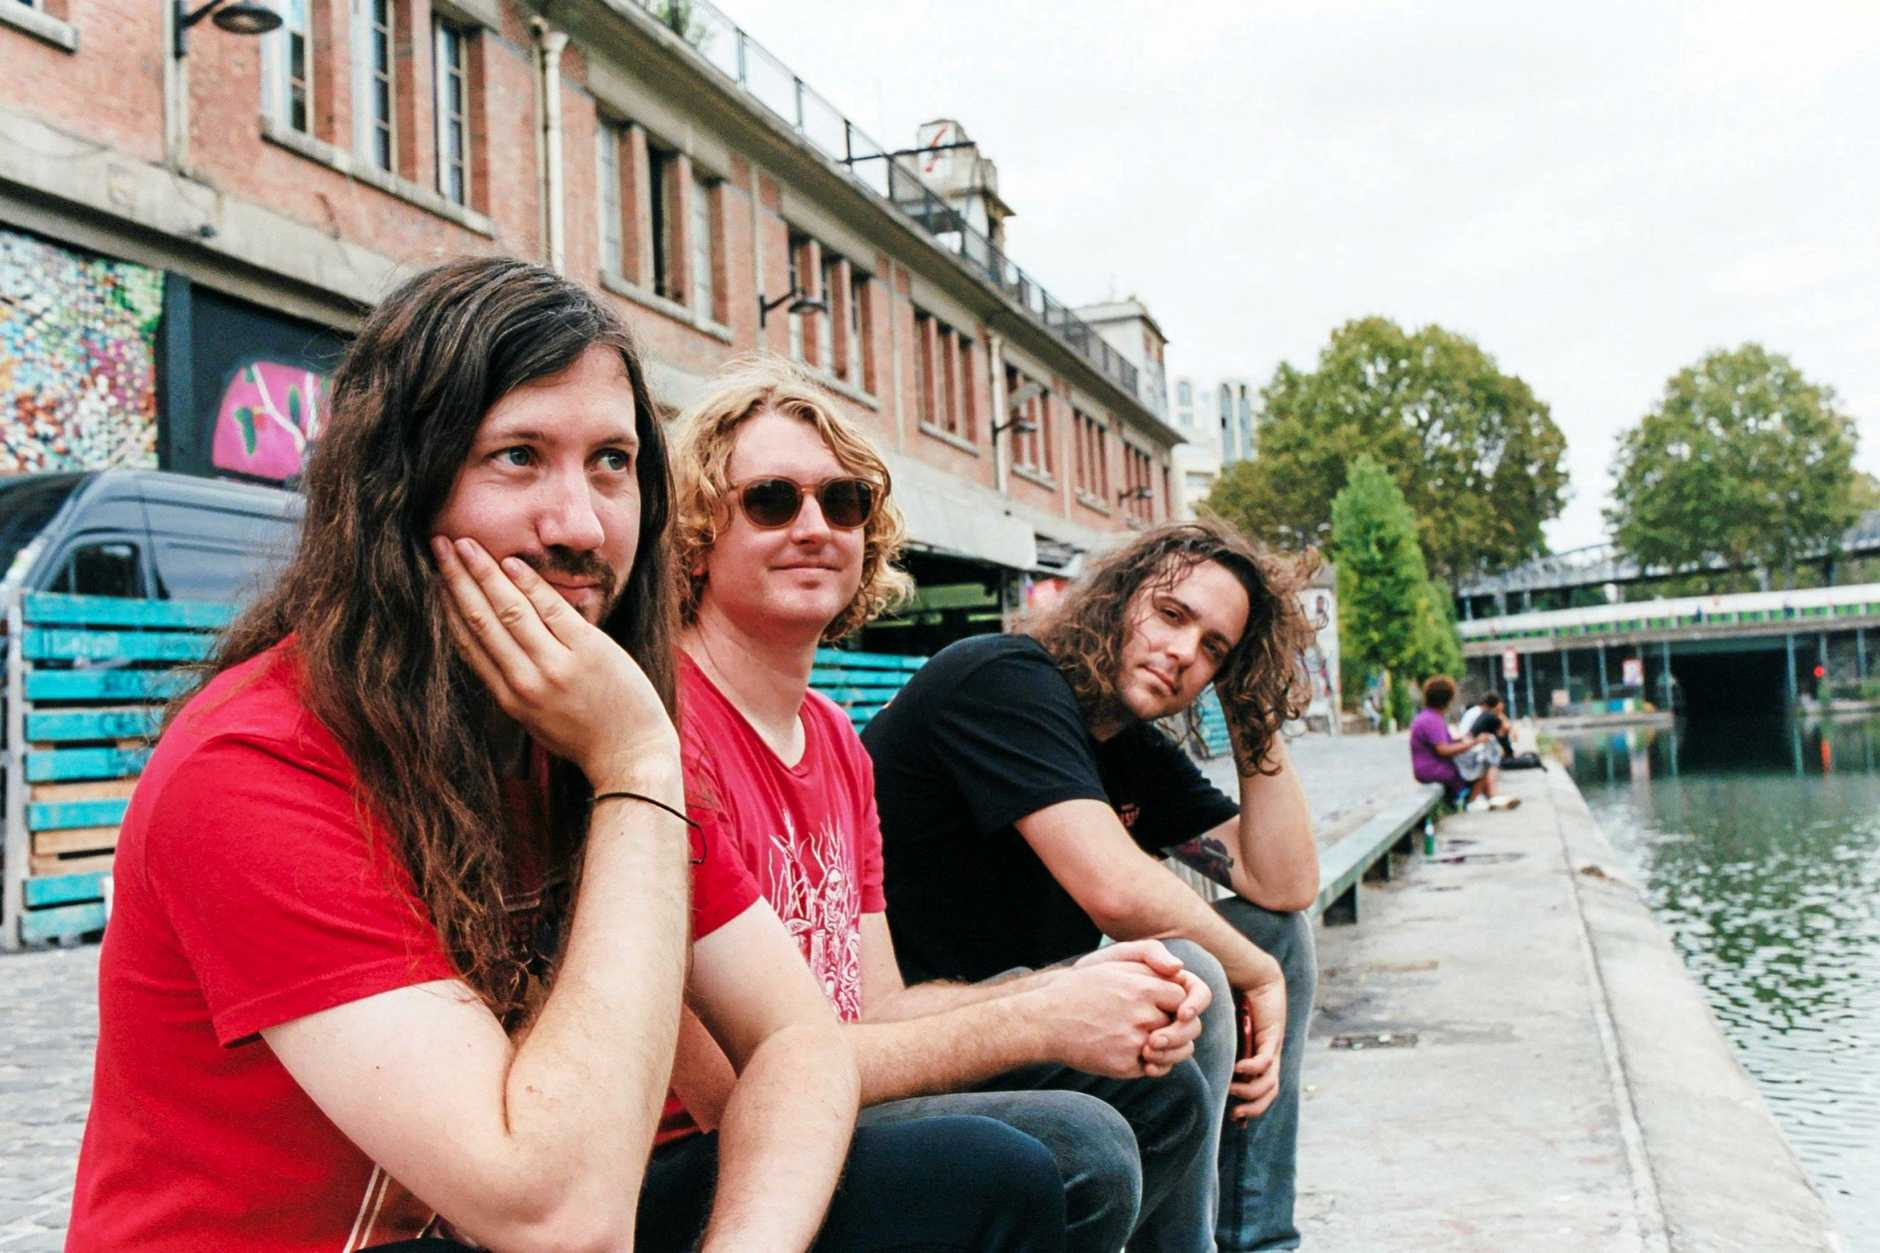 BAND: DZ Deathrays are an Australian dance-punk trio from Brisbane, composed of Shane Parsons, Lachlan Ewbank and Simon Ridley.